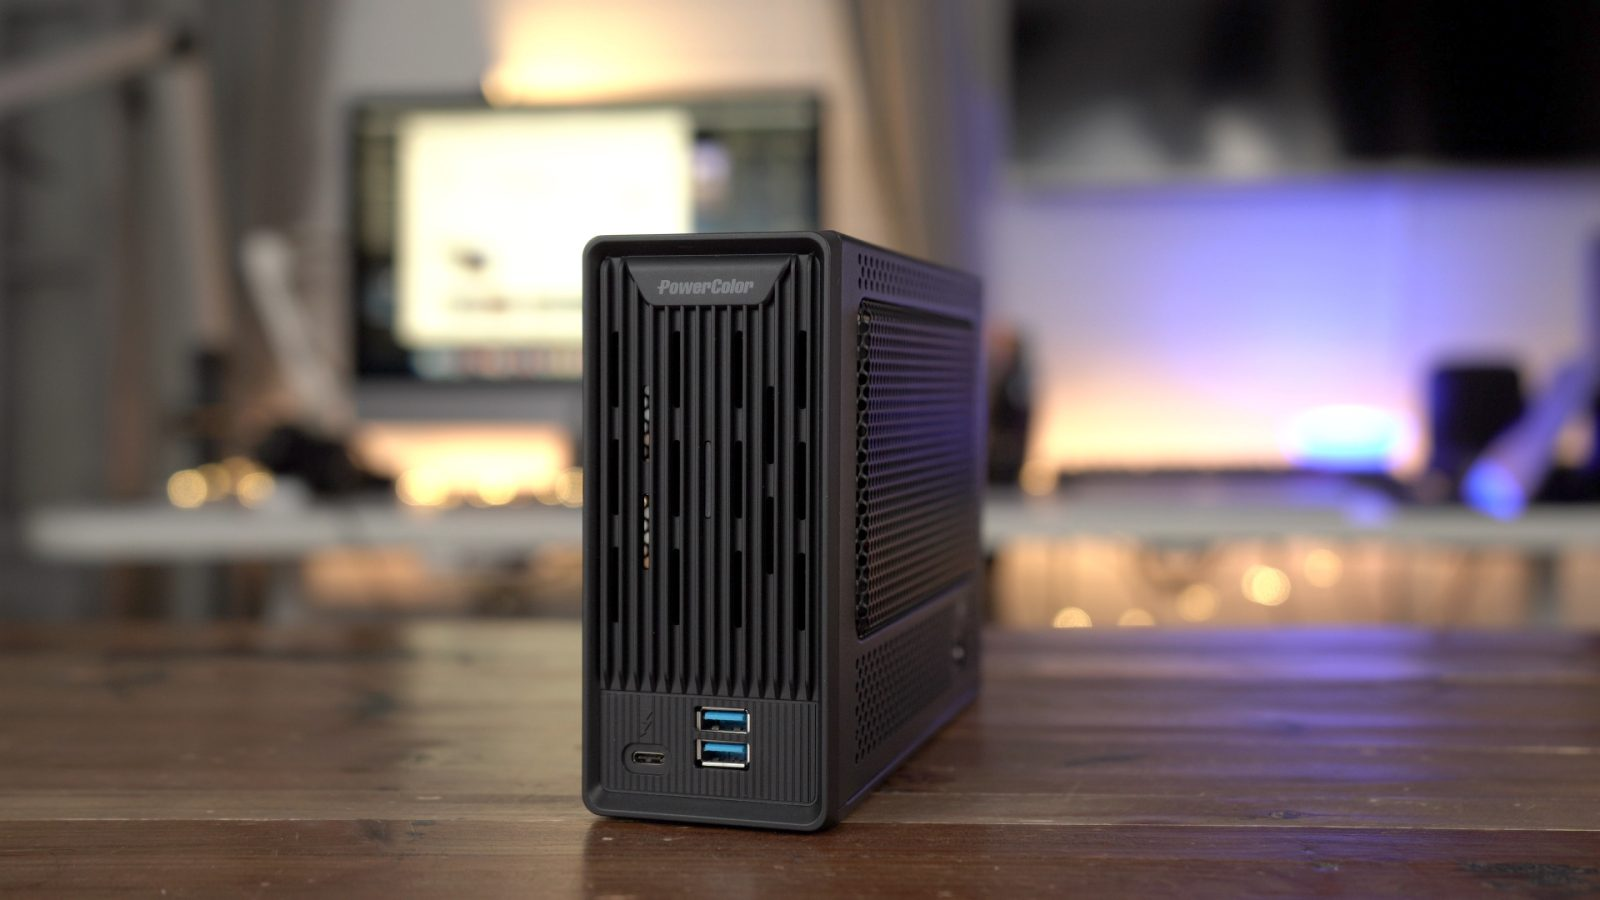 PowerColor Mini Pro review: a pint-sized RX 570 eGPU [Video